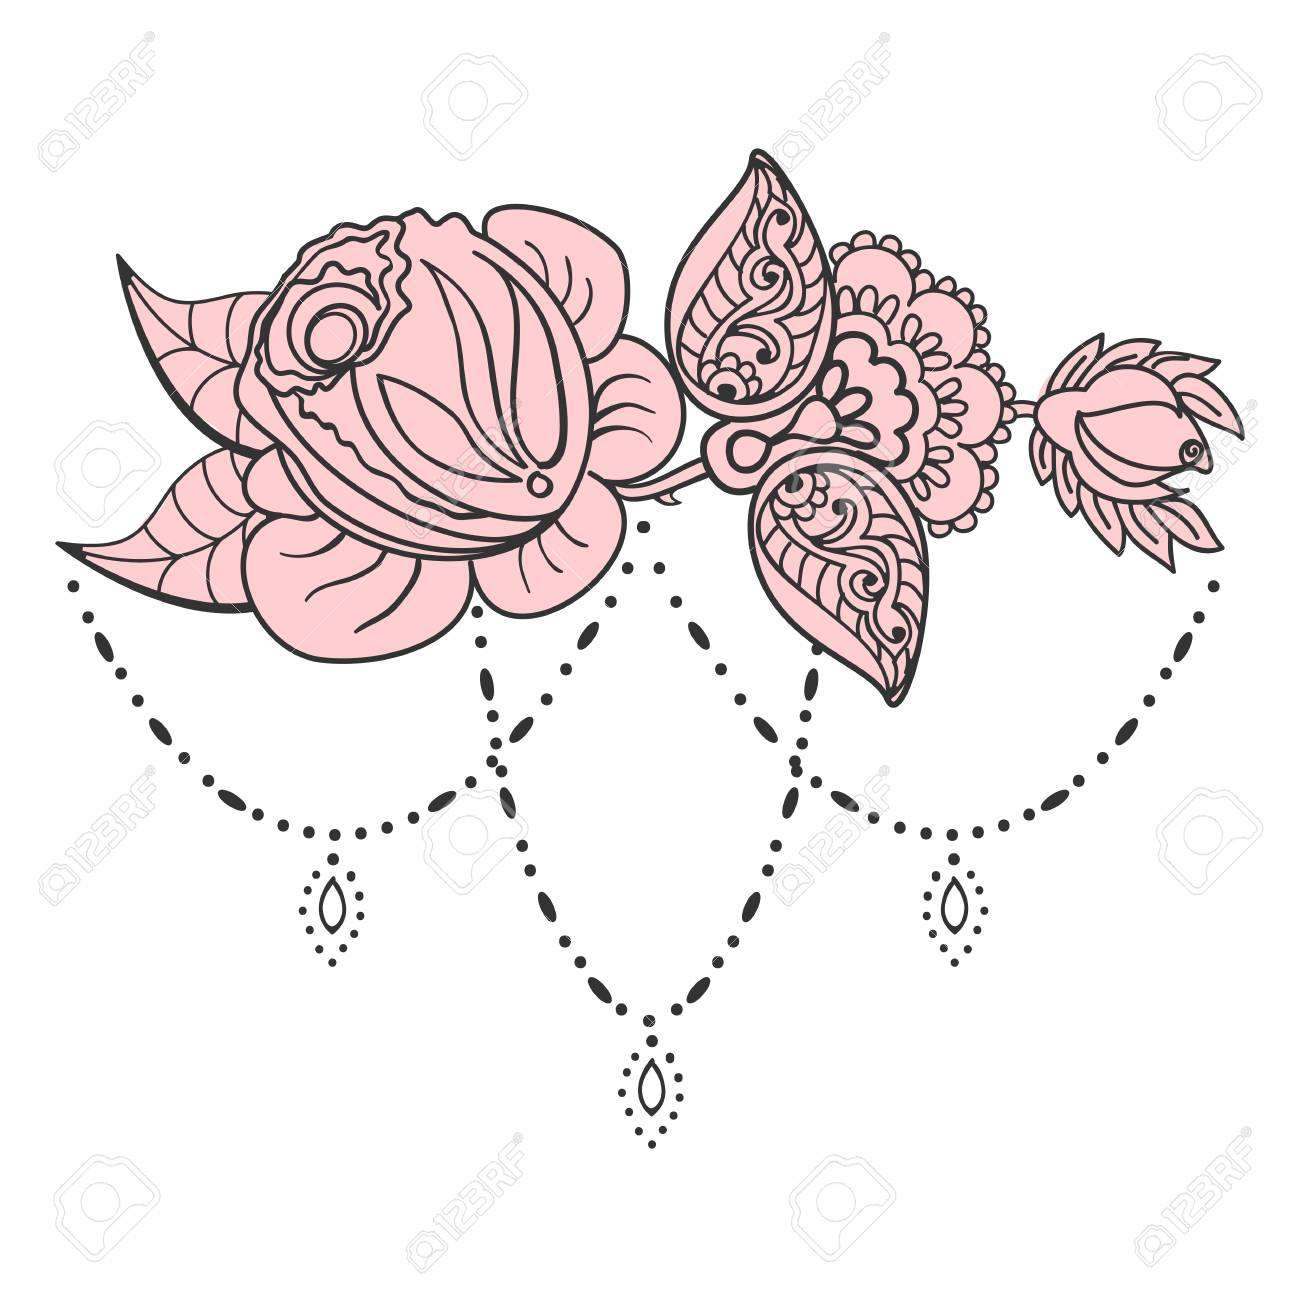 Hand Drawn Rose Ornament Of Floral Elements For Henna Tattoo